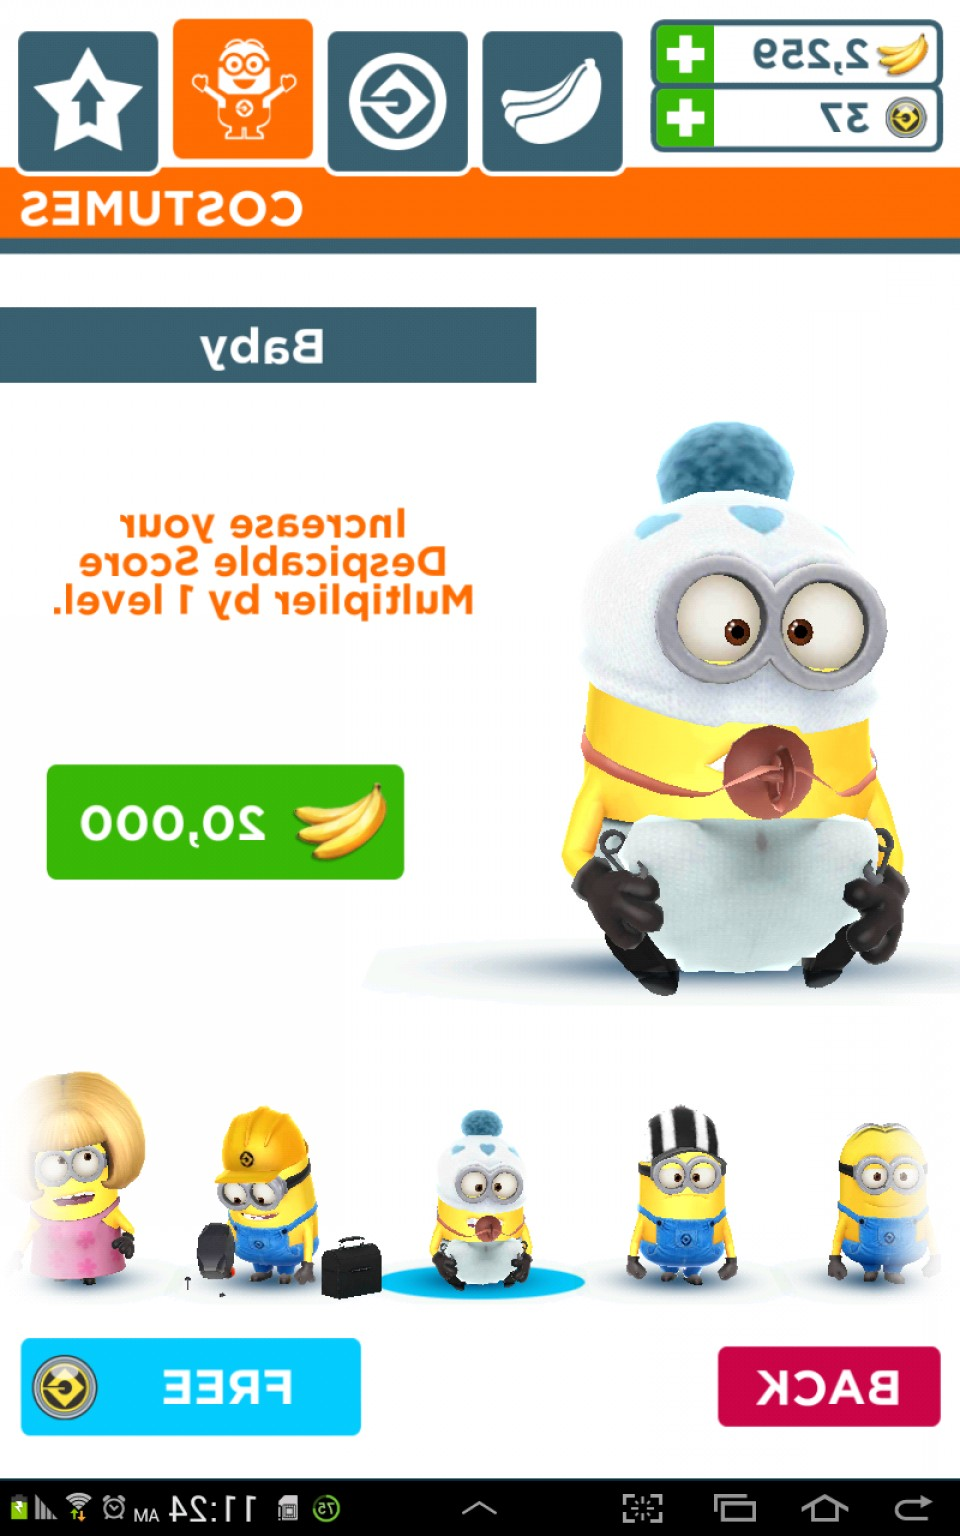 Defeat Vector In Minion Rush: Minion Rush Game Is Just Like Other